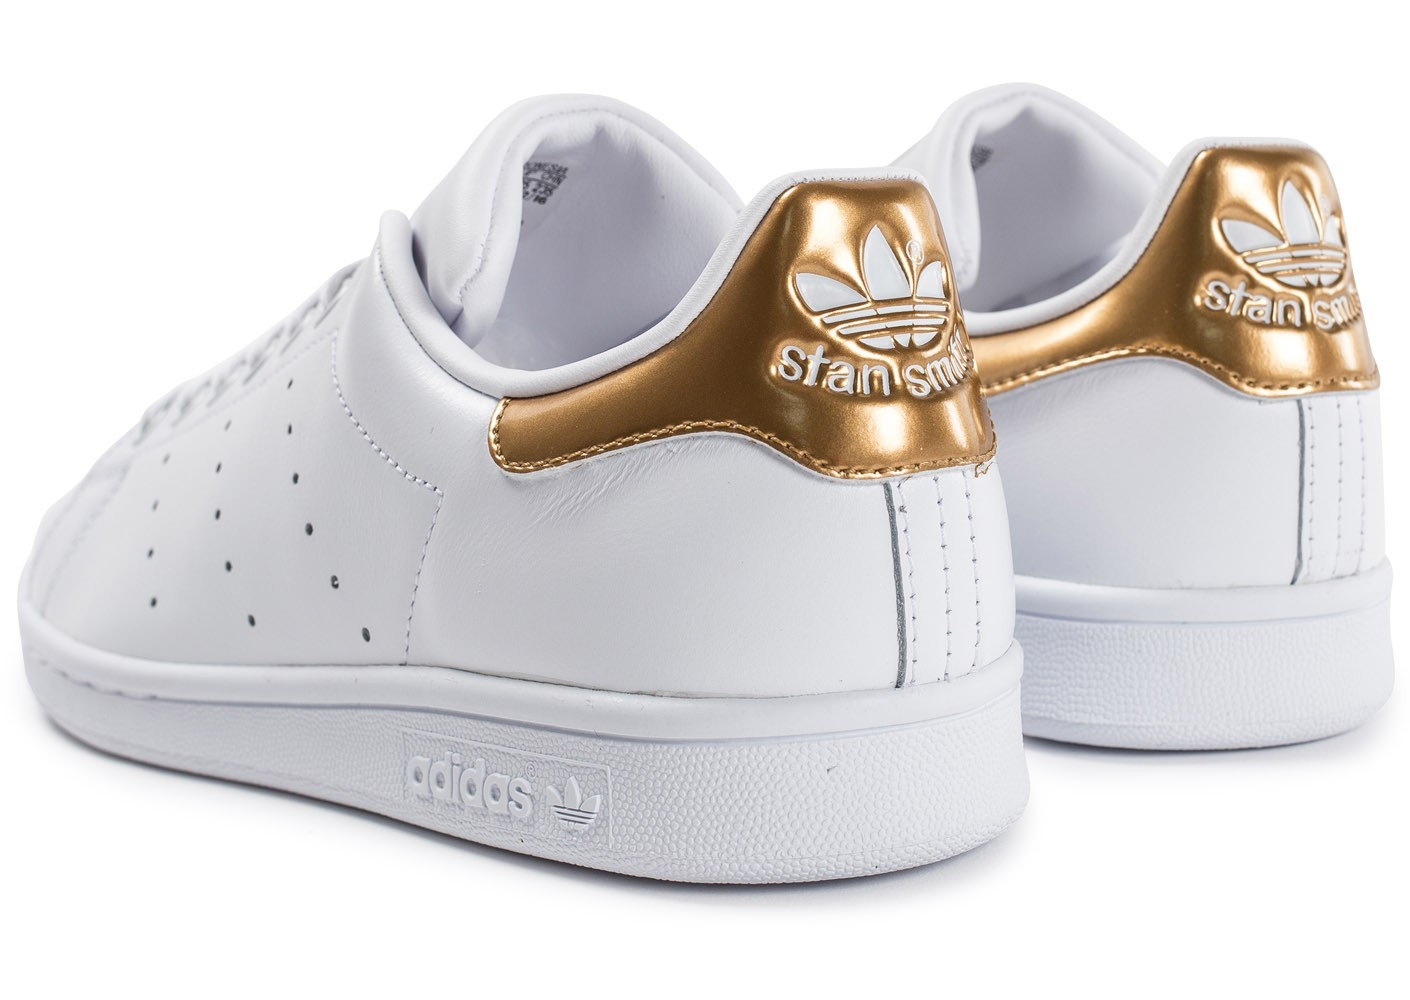 stan smith femme blanc et or Off 65% - www.bashhguidelines.org